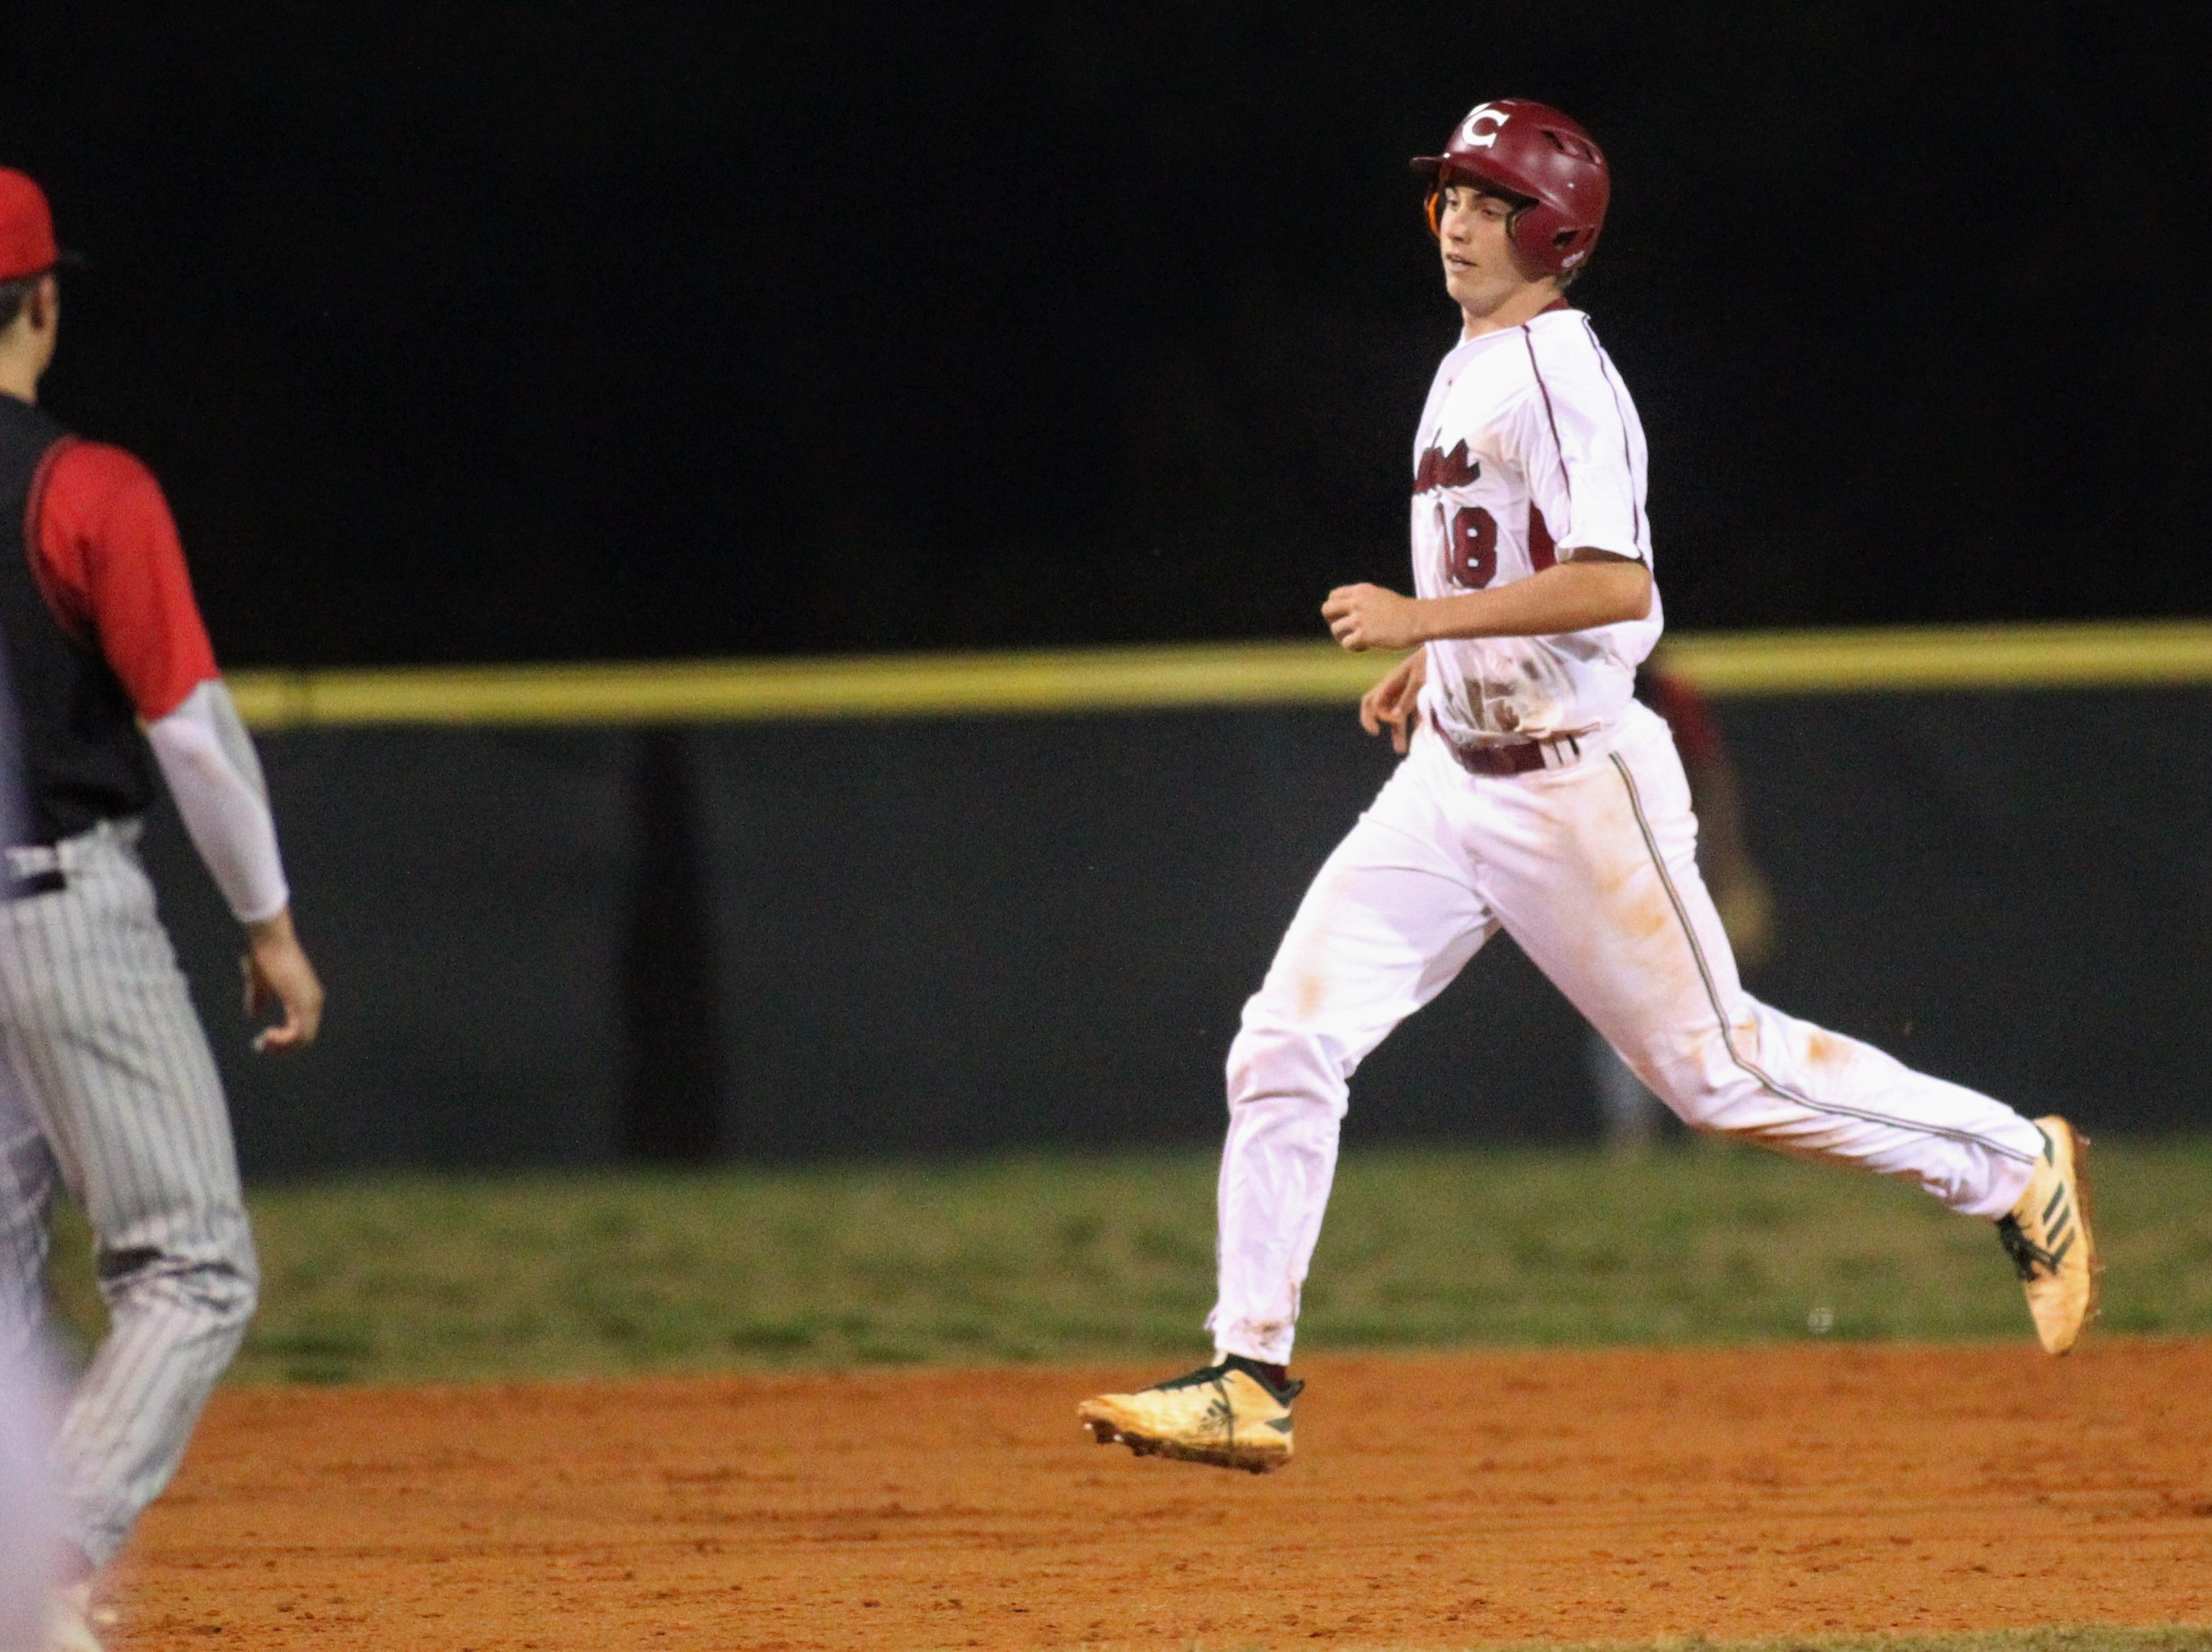 Chiles senior William Kilduff trots around the bases after a solo home run as Chiles won an 11-6 home game against Leon on Friday, April 5, 2019, to force a season split. The Lions won 3-0 earlier in the week.